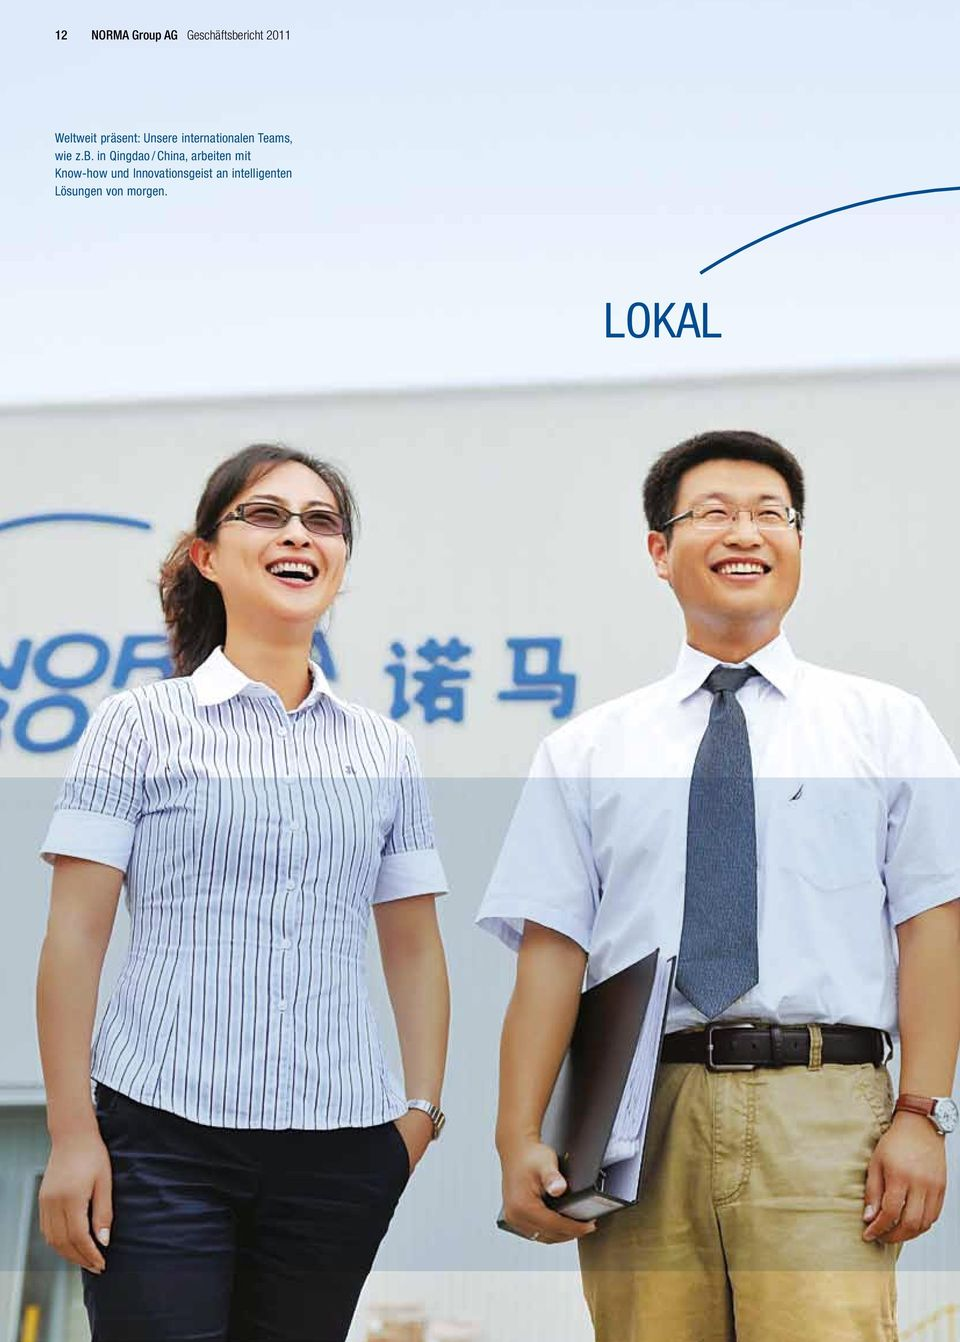 in Qingdao / China, arbeiten mit Know-how und